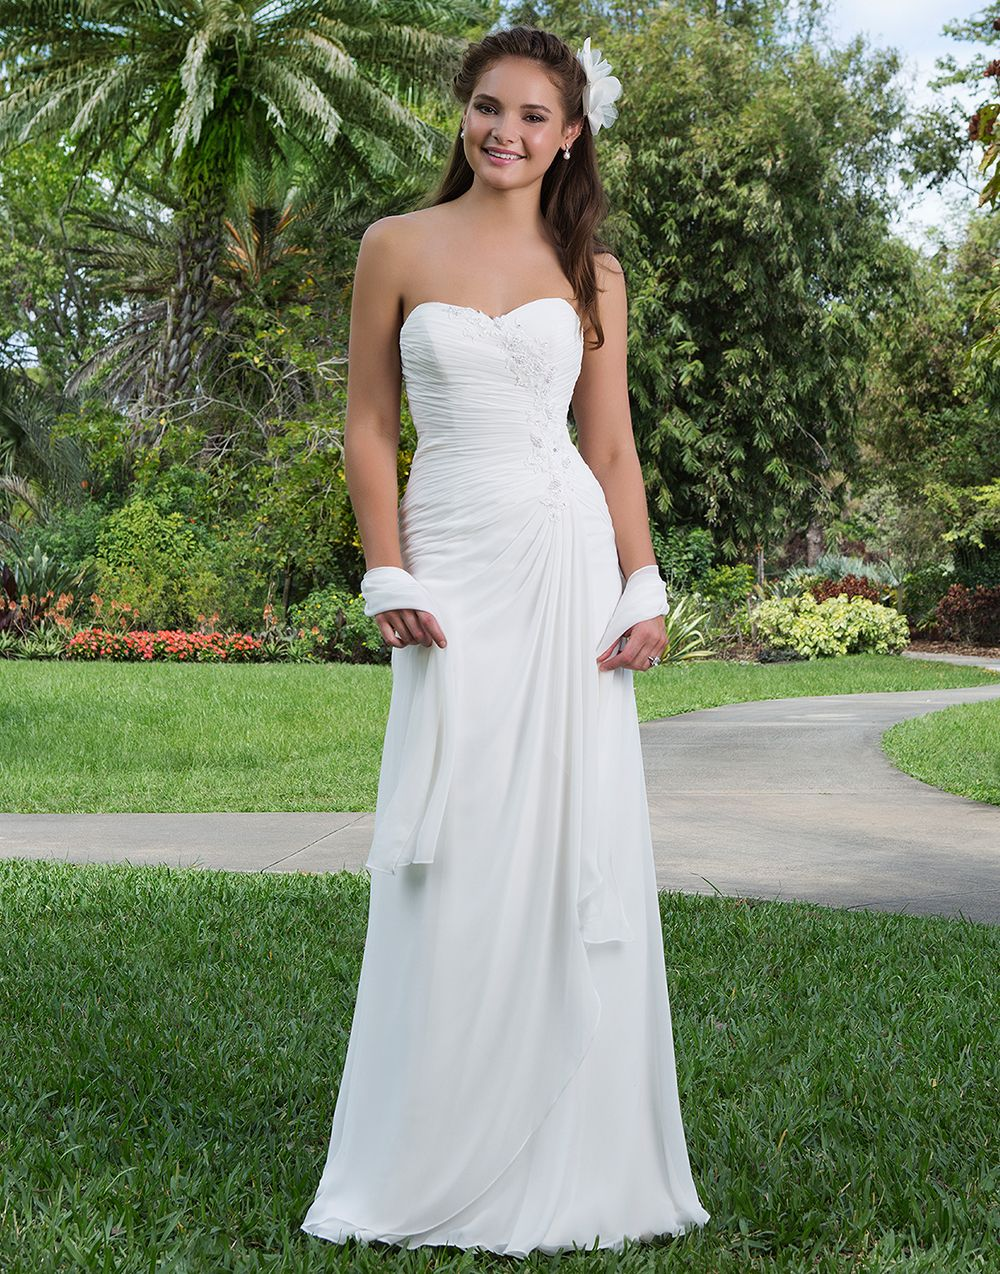 32f2a0d858d Sweetheart Gowns sweetheart style 6111 A sweetheart asymmetrically draped A- line chiffon gown featuring a beaded motif